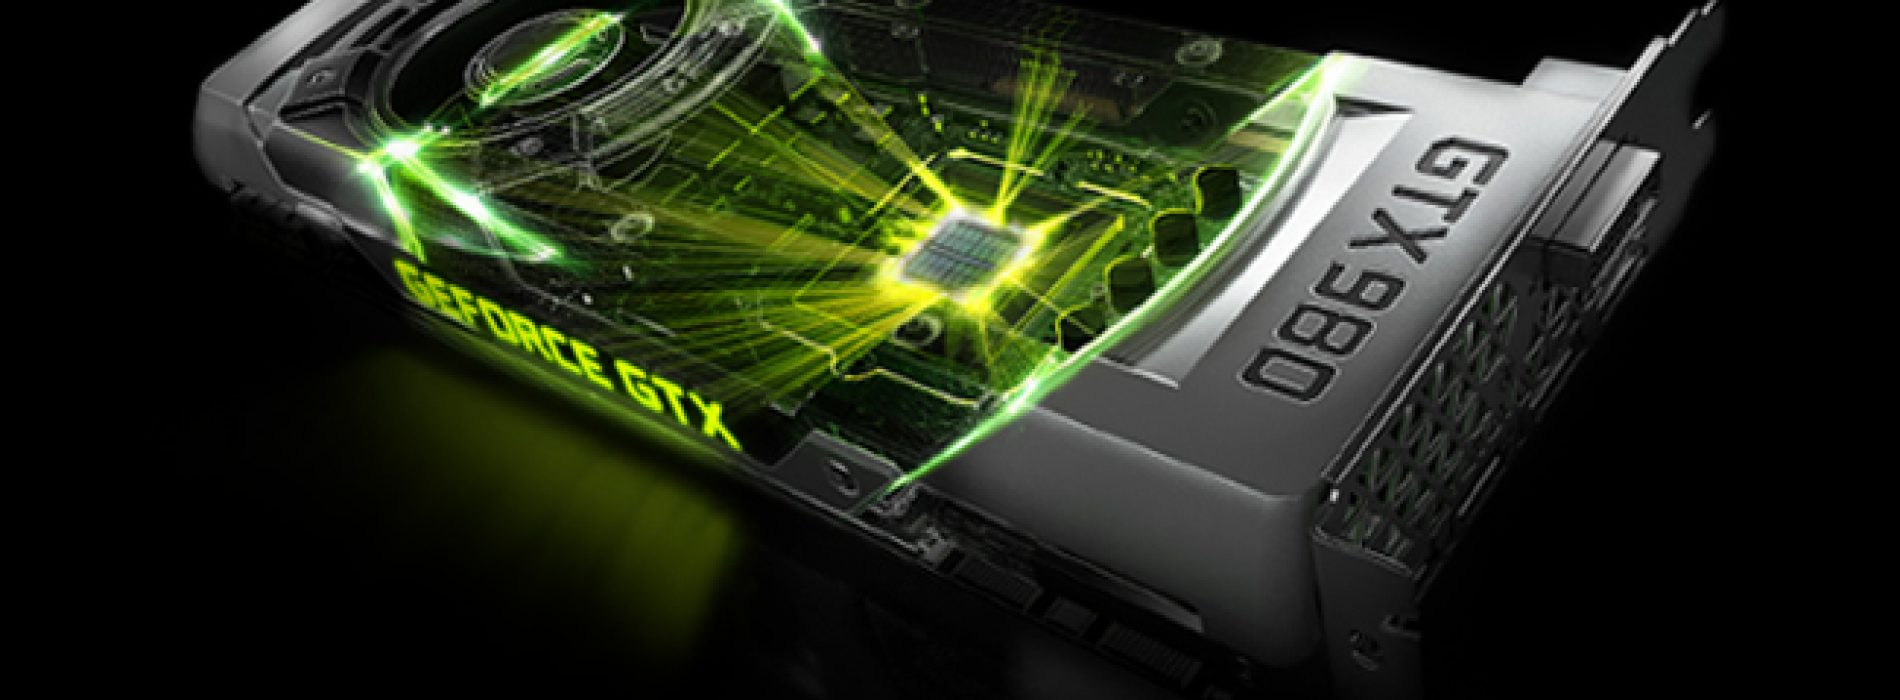 NVIDIA GeForce GTX 980 & 970: With the all new Maxwell architecture